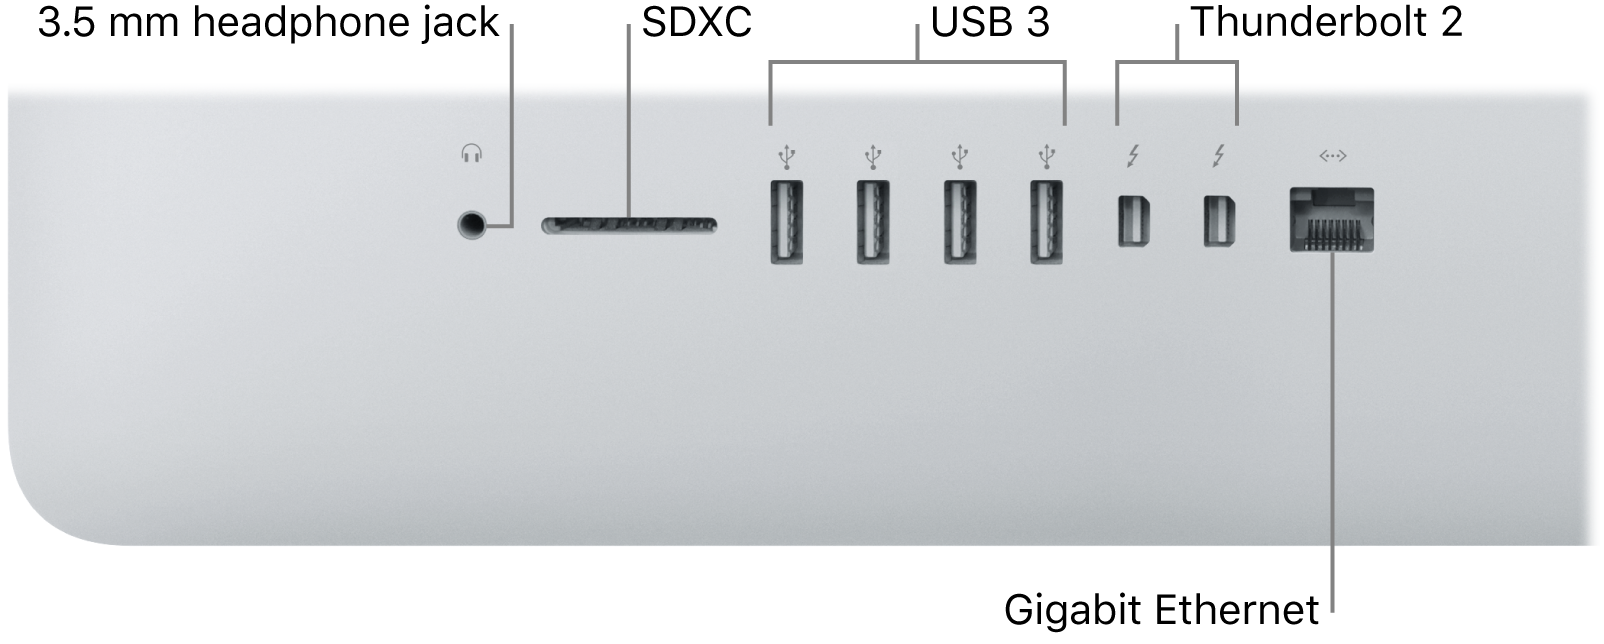 Part of the back of an iMac, showing the 3.5 mm headphone jack, SDXC slot, USB 3 ports, Thunderbolt 2 ports, and Gigabit Ethernet port.